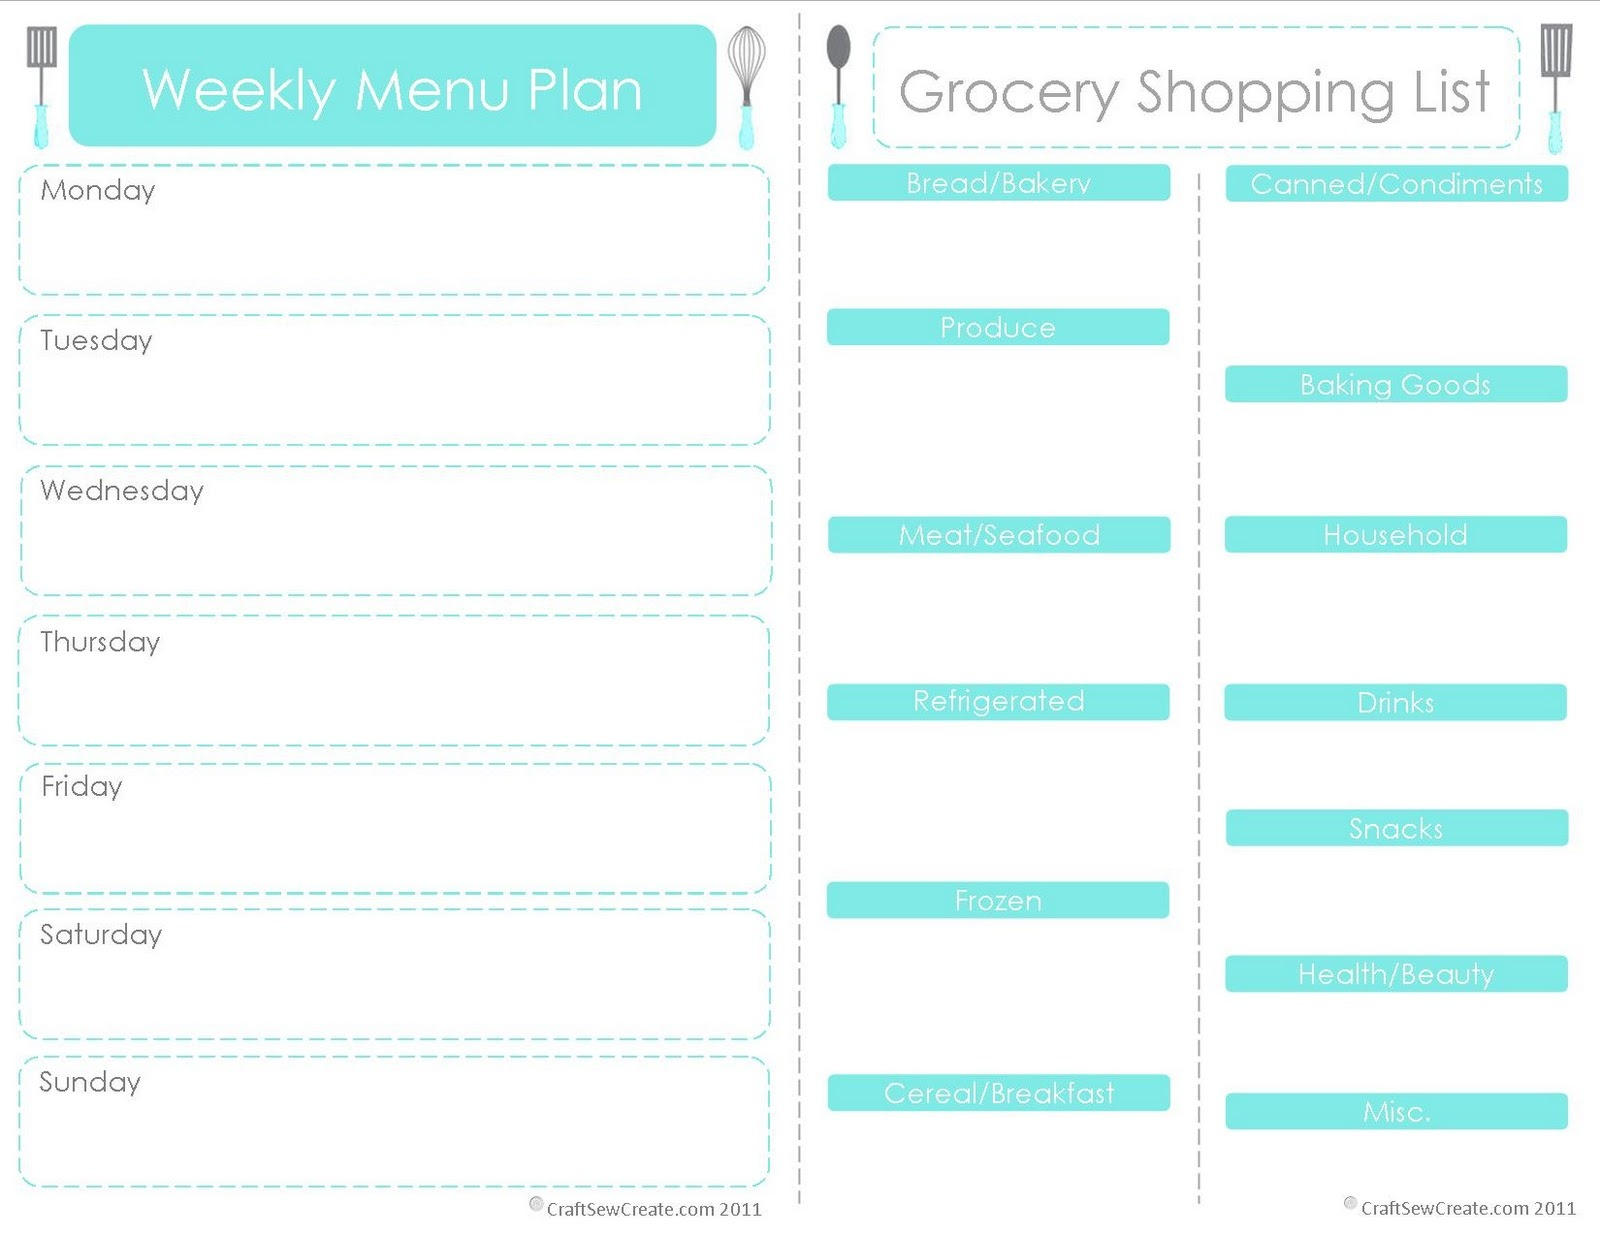 Craft Sew Create: Free Printable Menu Plan + Shopping List - Create A Menu Free Printable